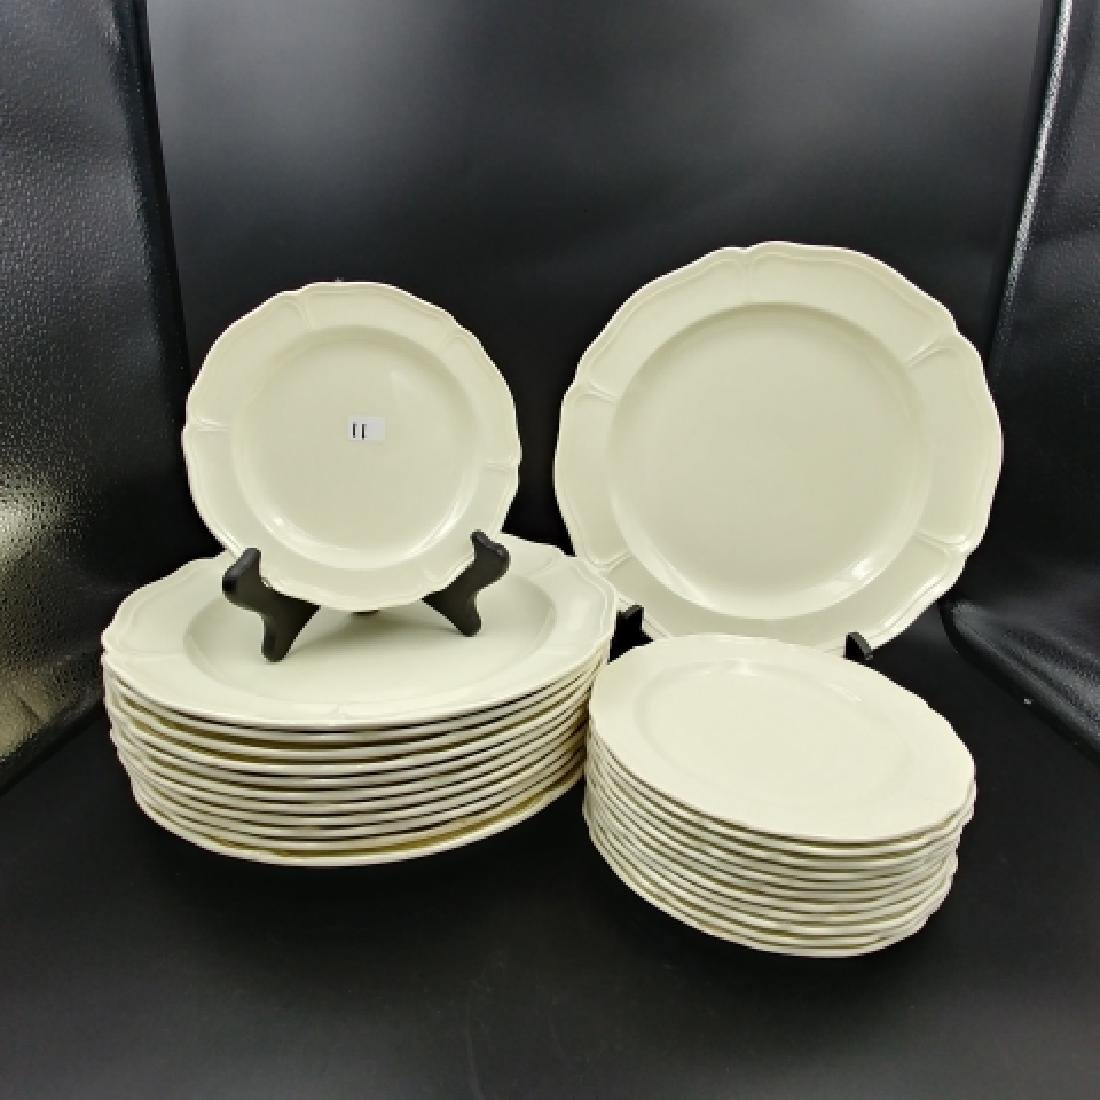 Wedgwood Queens Shape Plates (24)